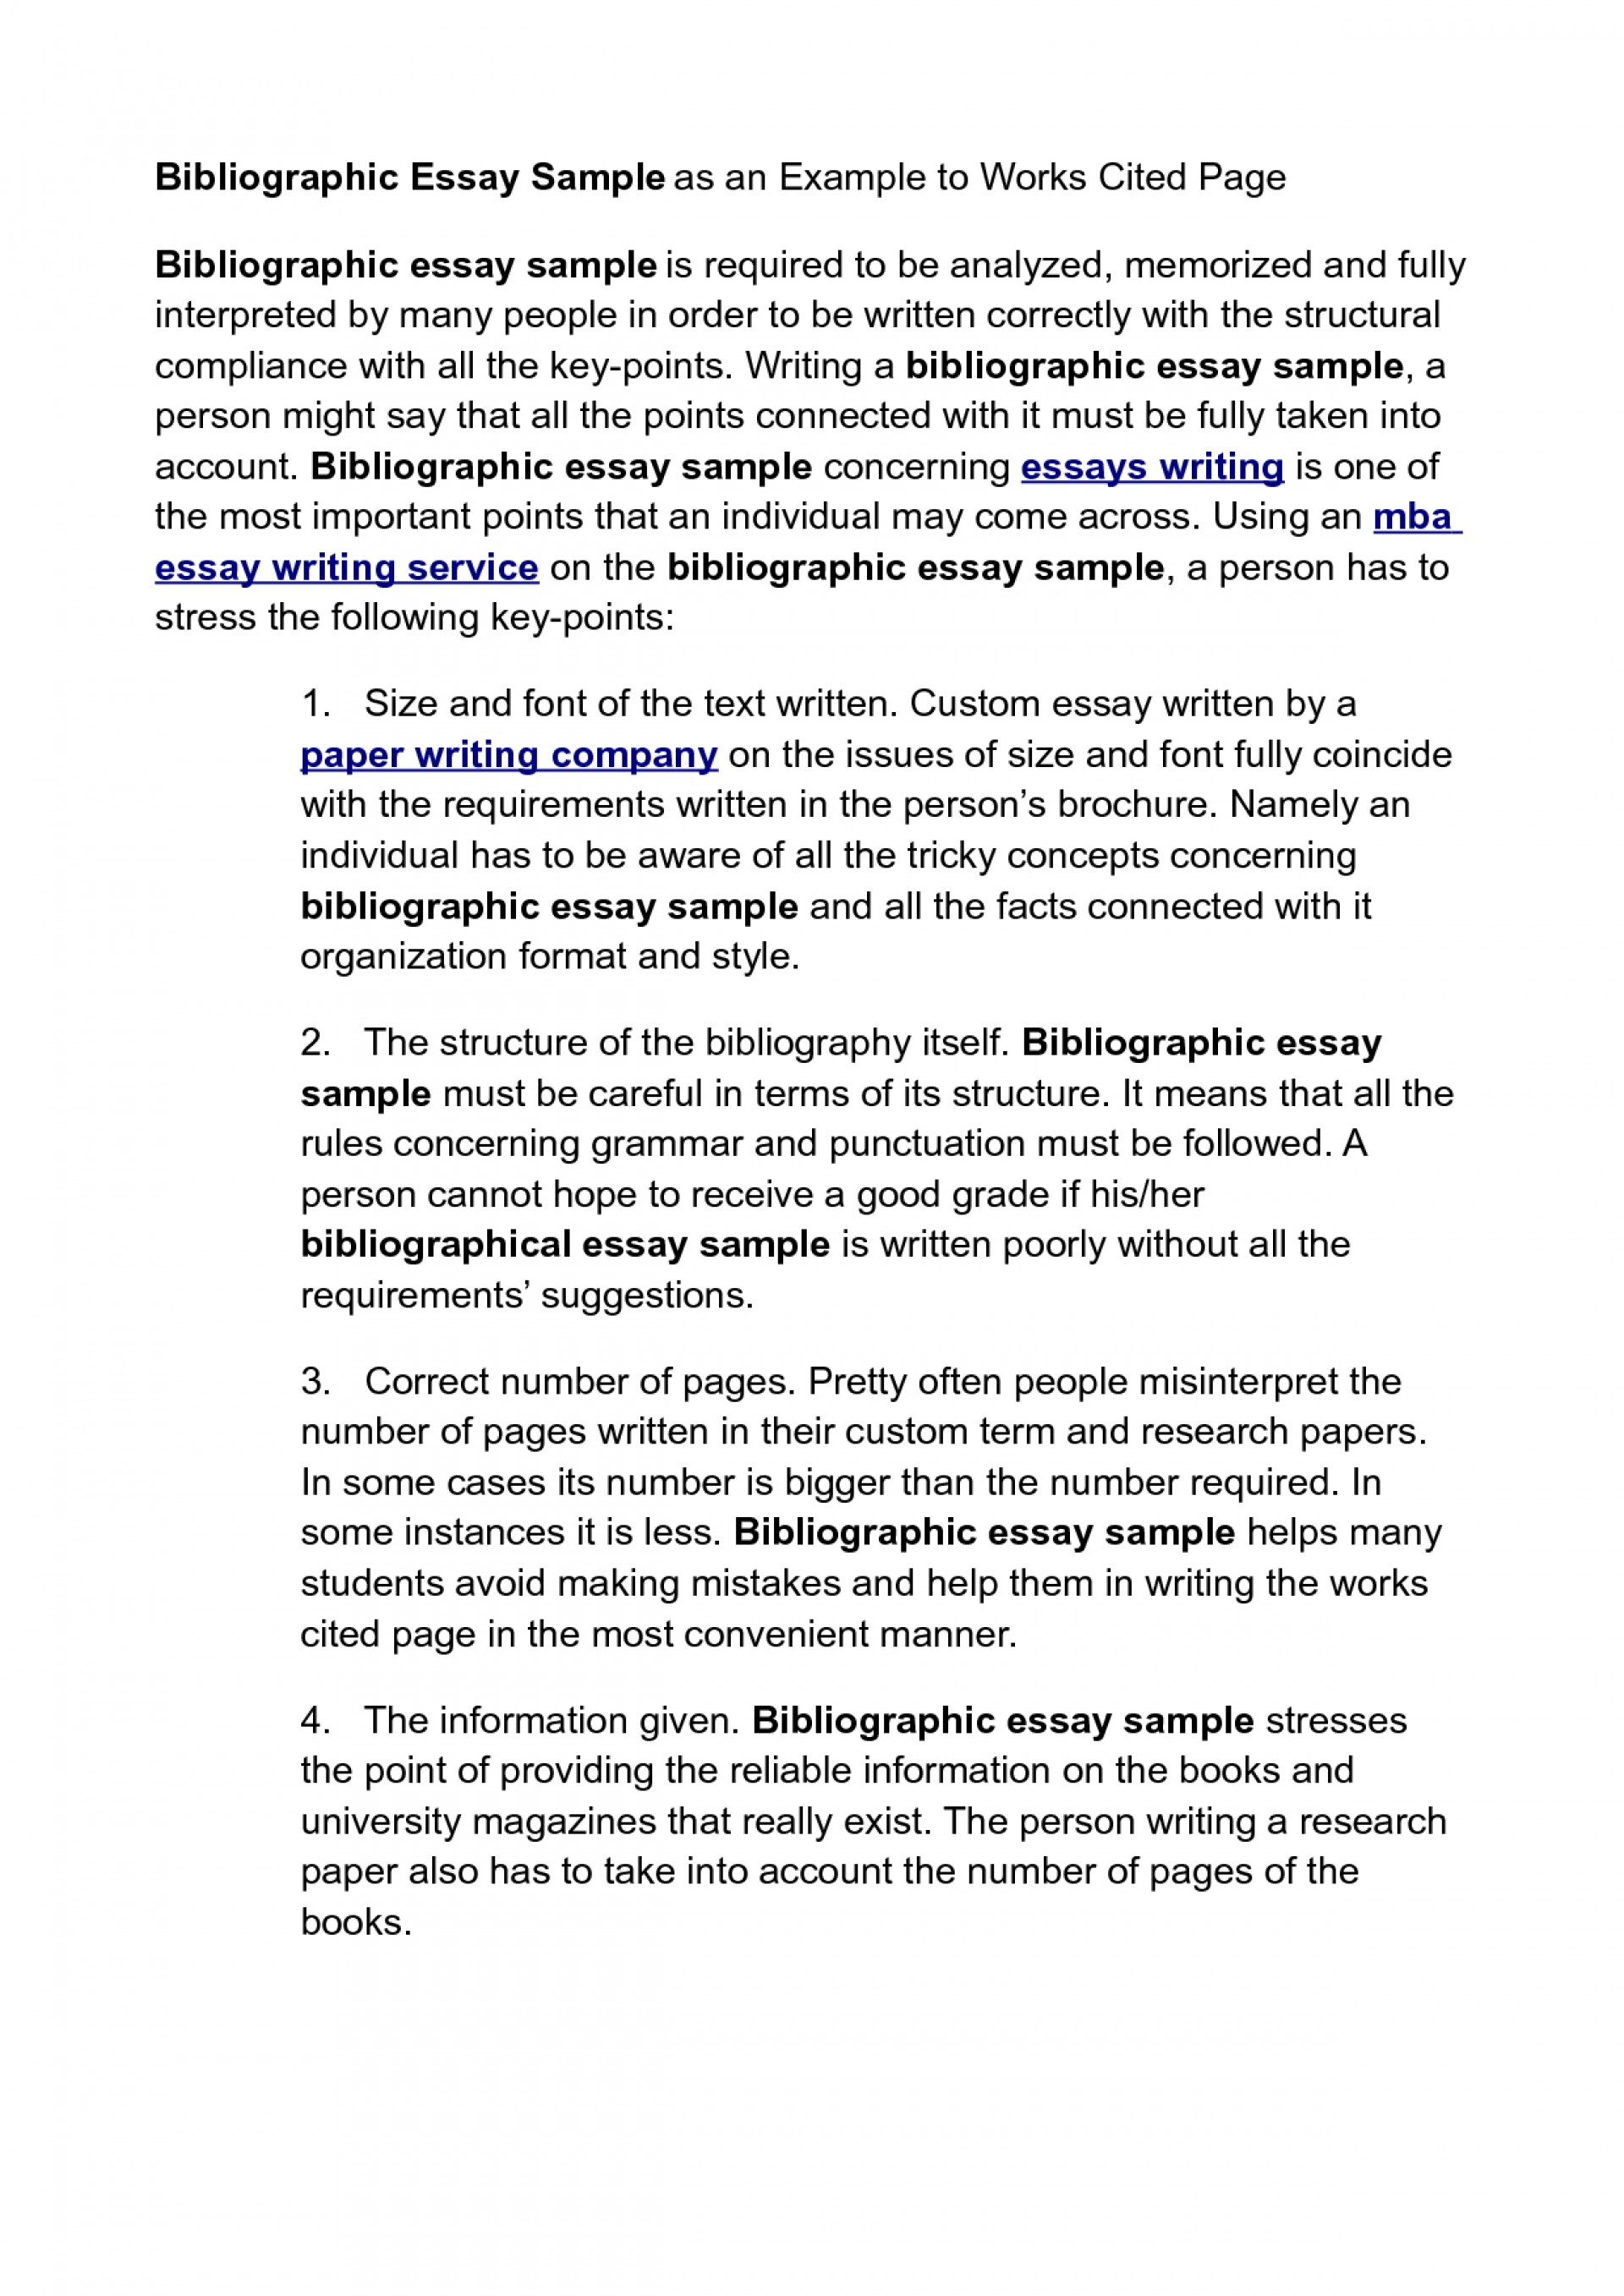 017 How To Cite In Essay Example Sample Persuasive With Works Cited Of Mla L Staggering Images Text Harvard Style Website Apa 1920